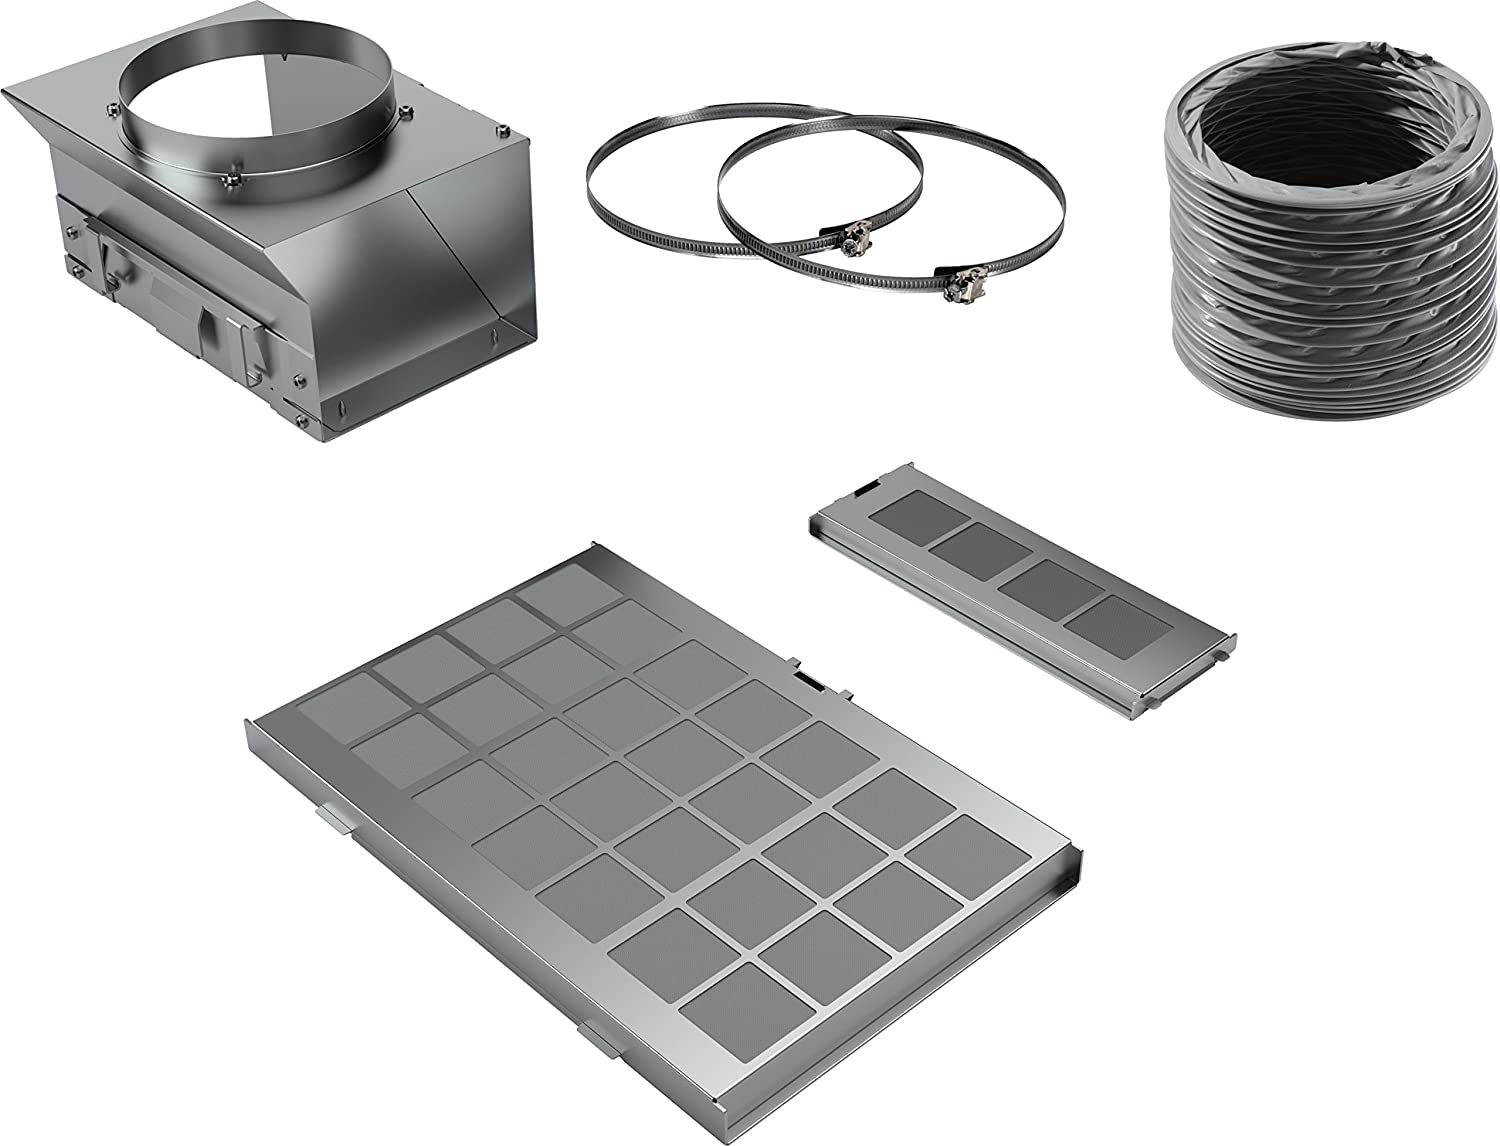 Siemens lz10aks00/Accessory for Stove Bell/ /Accessory for Fireplace Recycling Kit, Siemens, Black, Grey